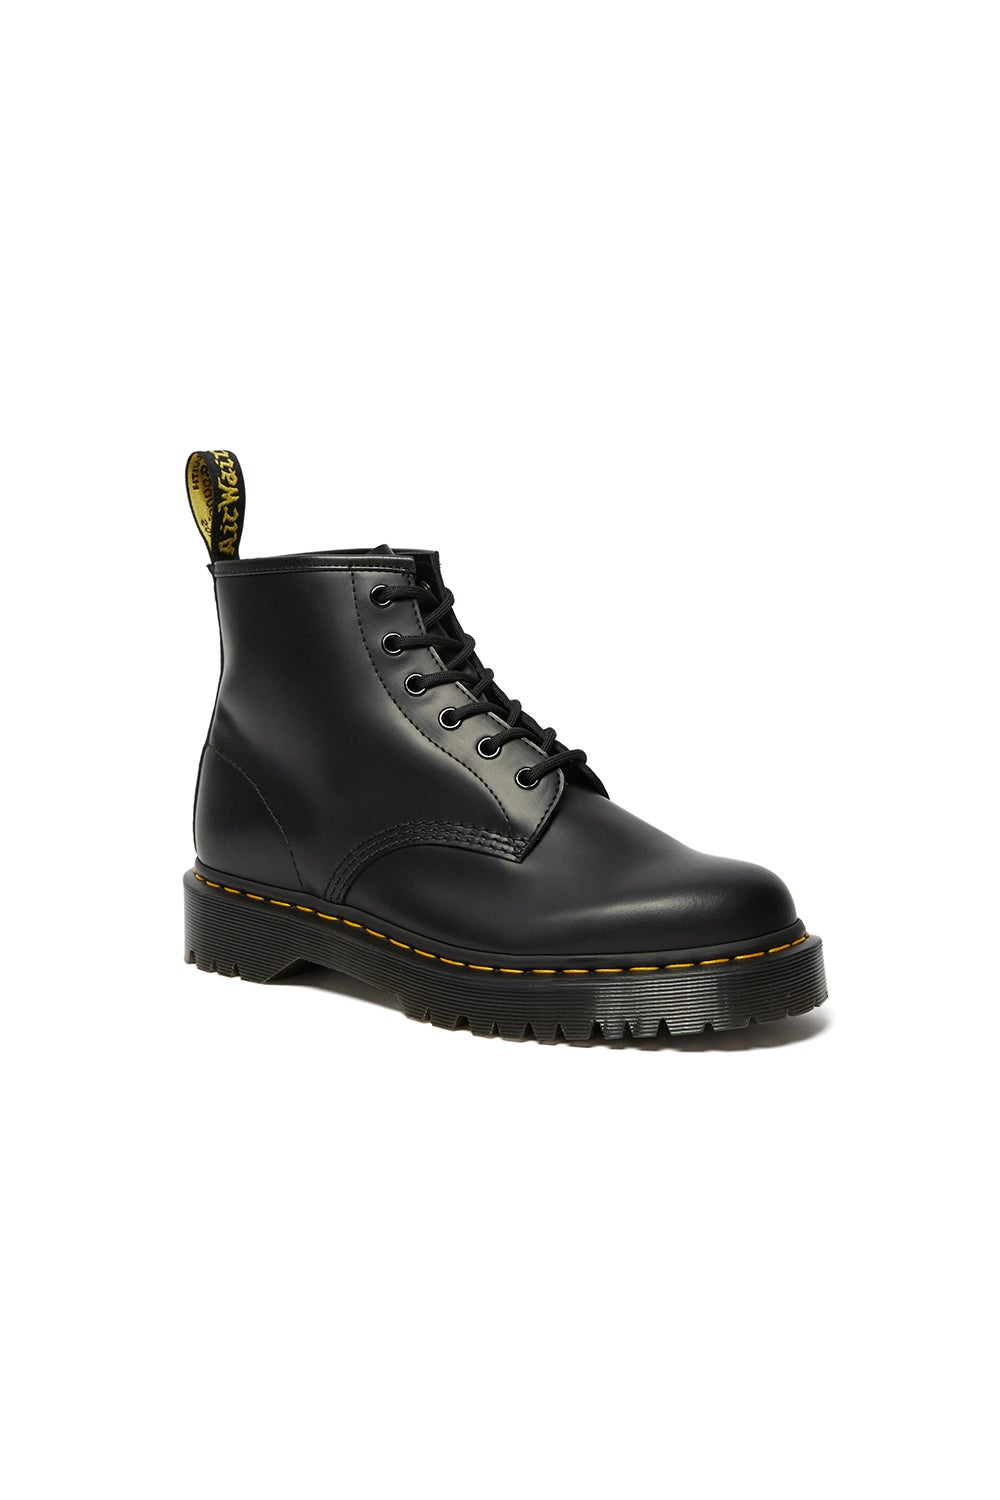 Dr. Martens 101 Bex Boot Black